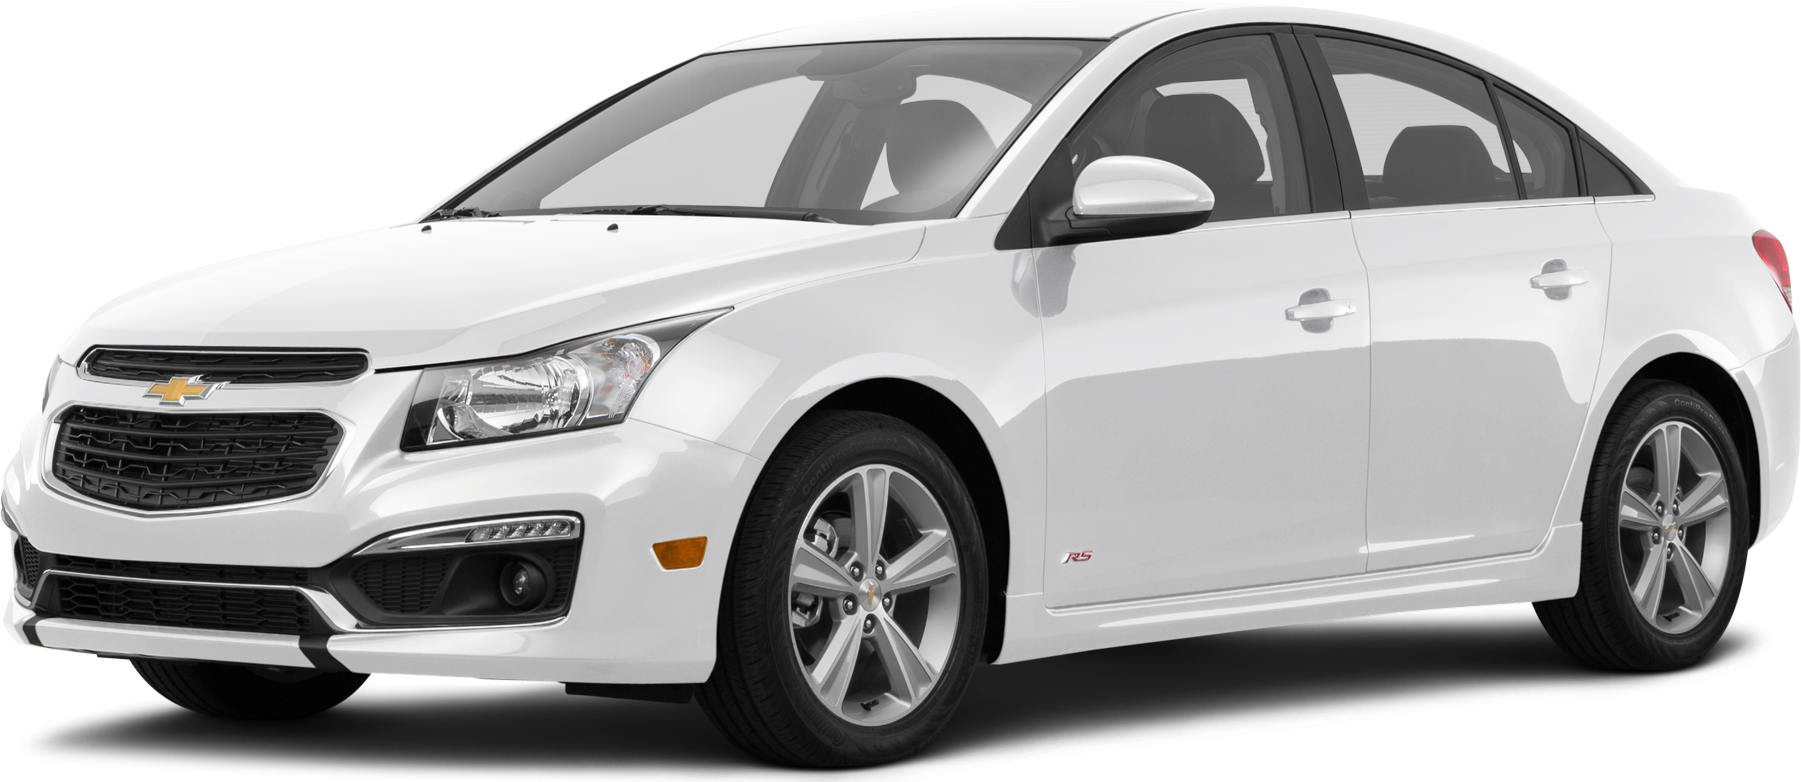 Used 2017 Chevrolet Cruze Values Cars For Sale Kelley Blue Book